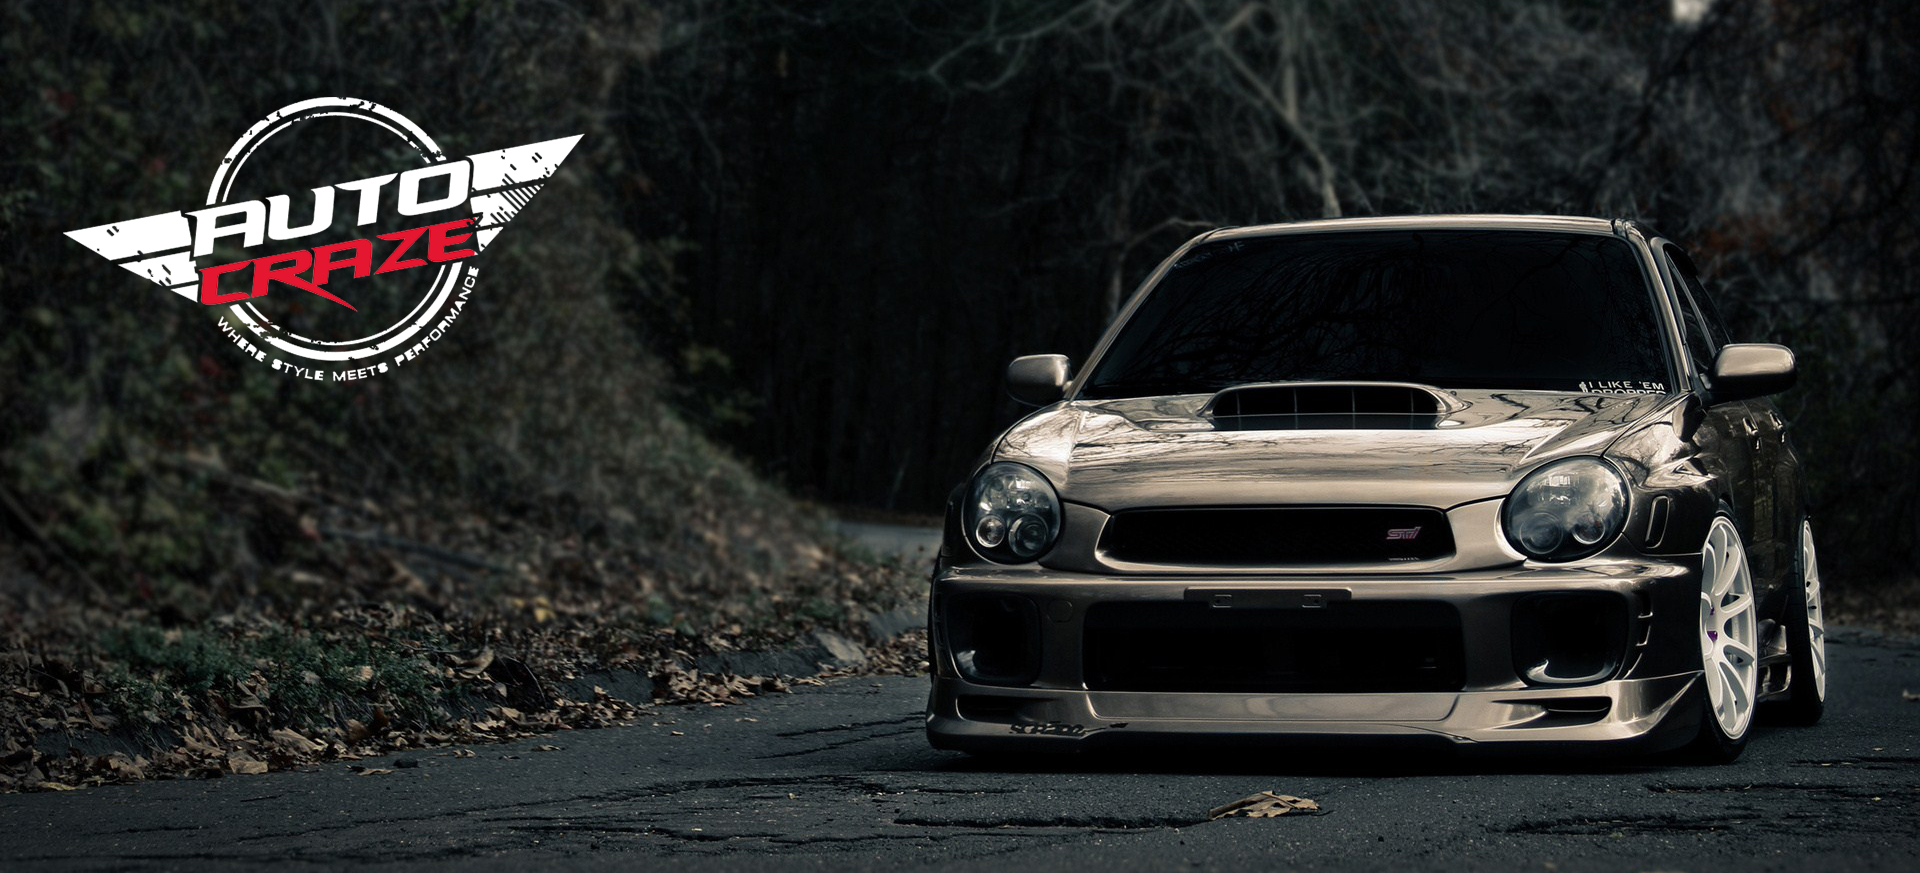 tuning-car-subaru-impreza-wallpaper-1920x1200